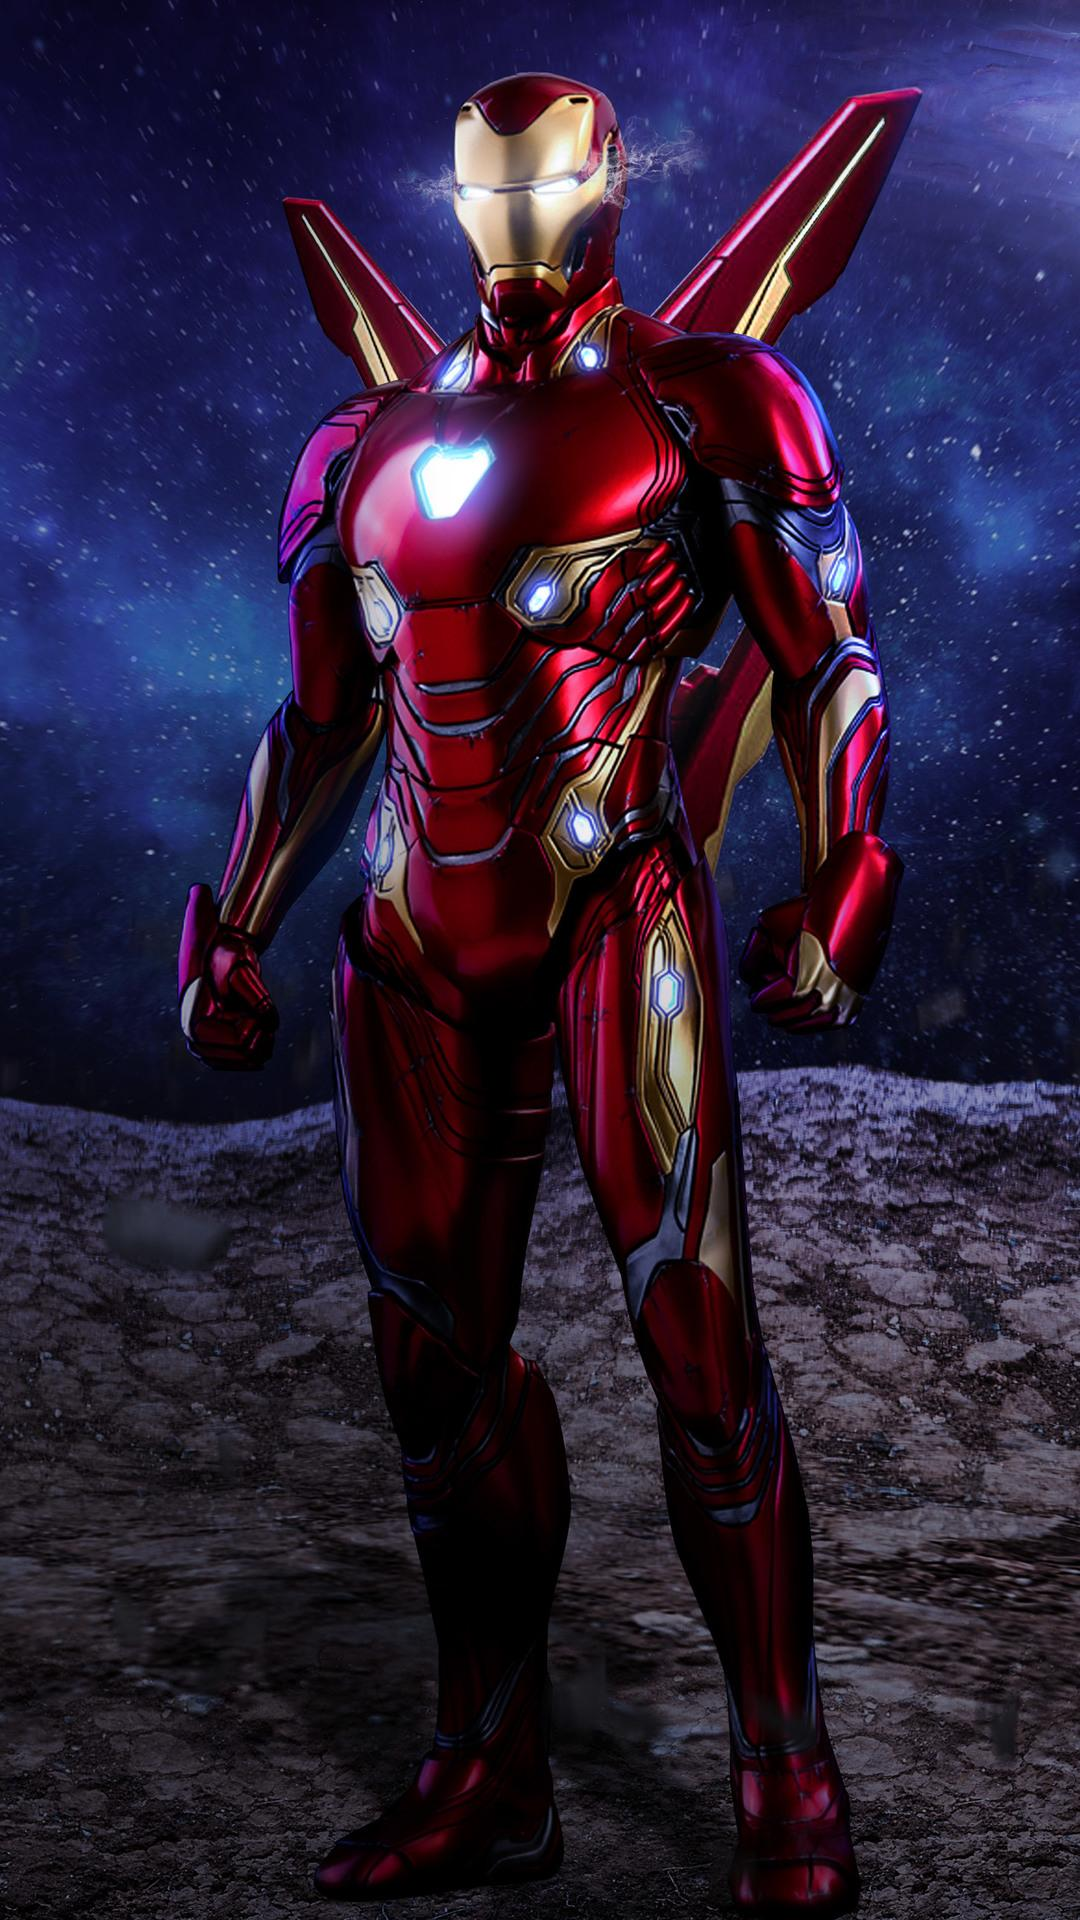 Iron Man Infinity War Wallpapers Wallpaper Cave